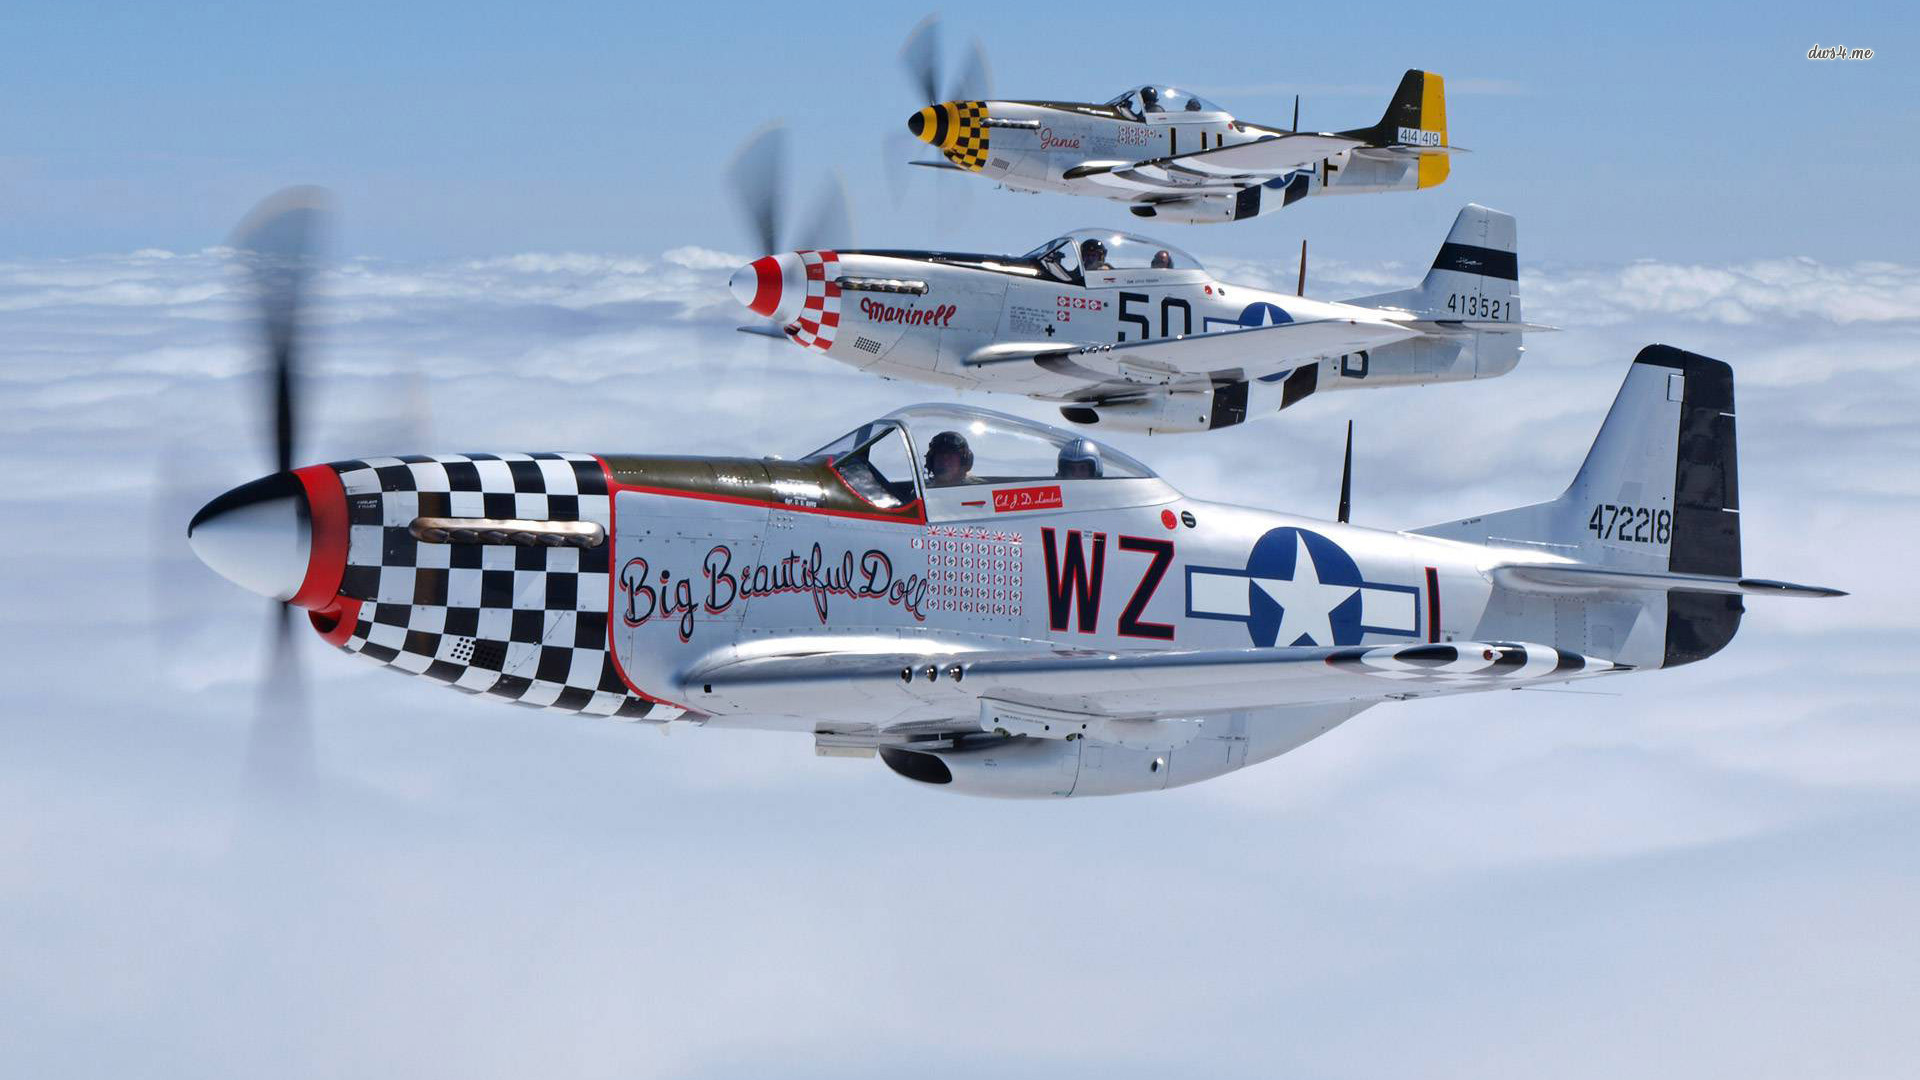 North American P 51 Mustang wallpaper   Aircraft wallpapers   5646 1920x1080